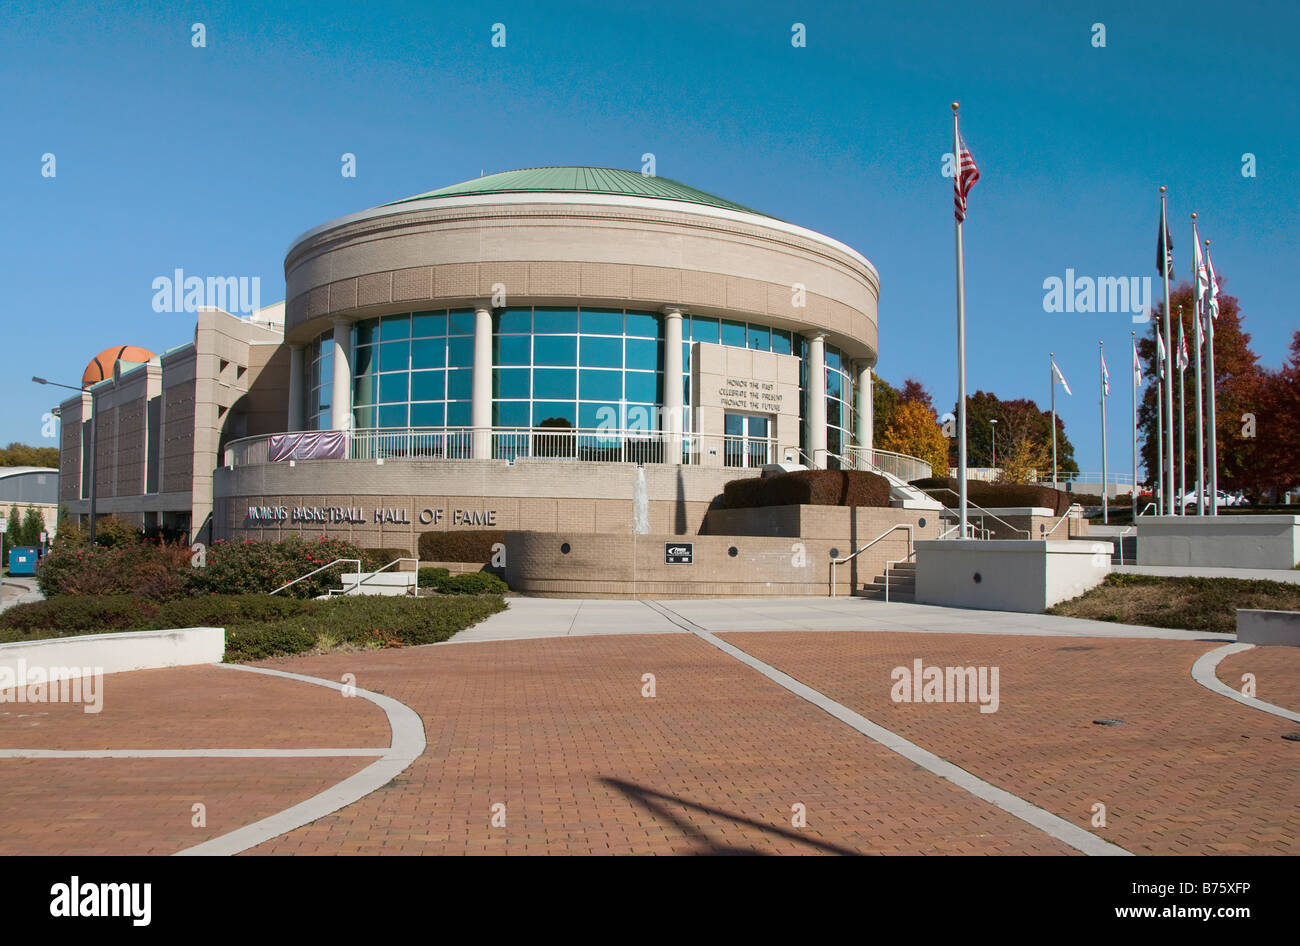 Women s Basketball Hall of Fame Knoxville Tennessee - Stock Image